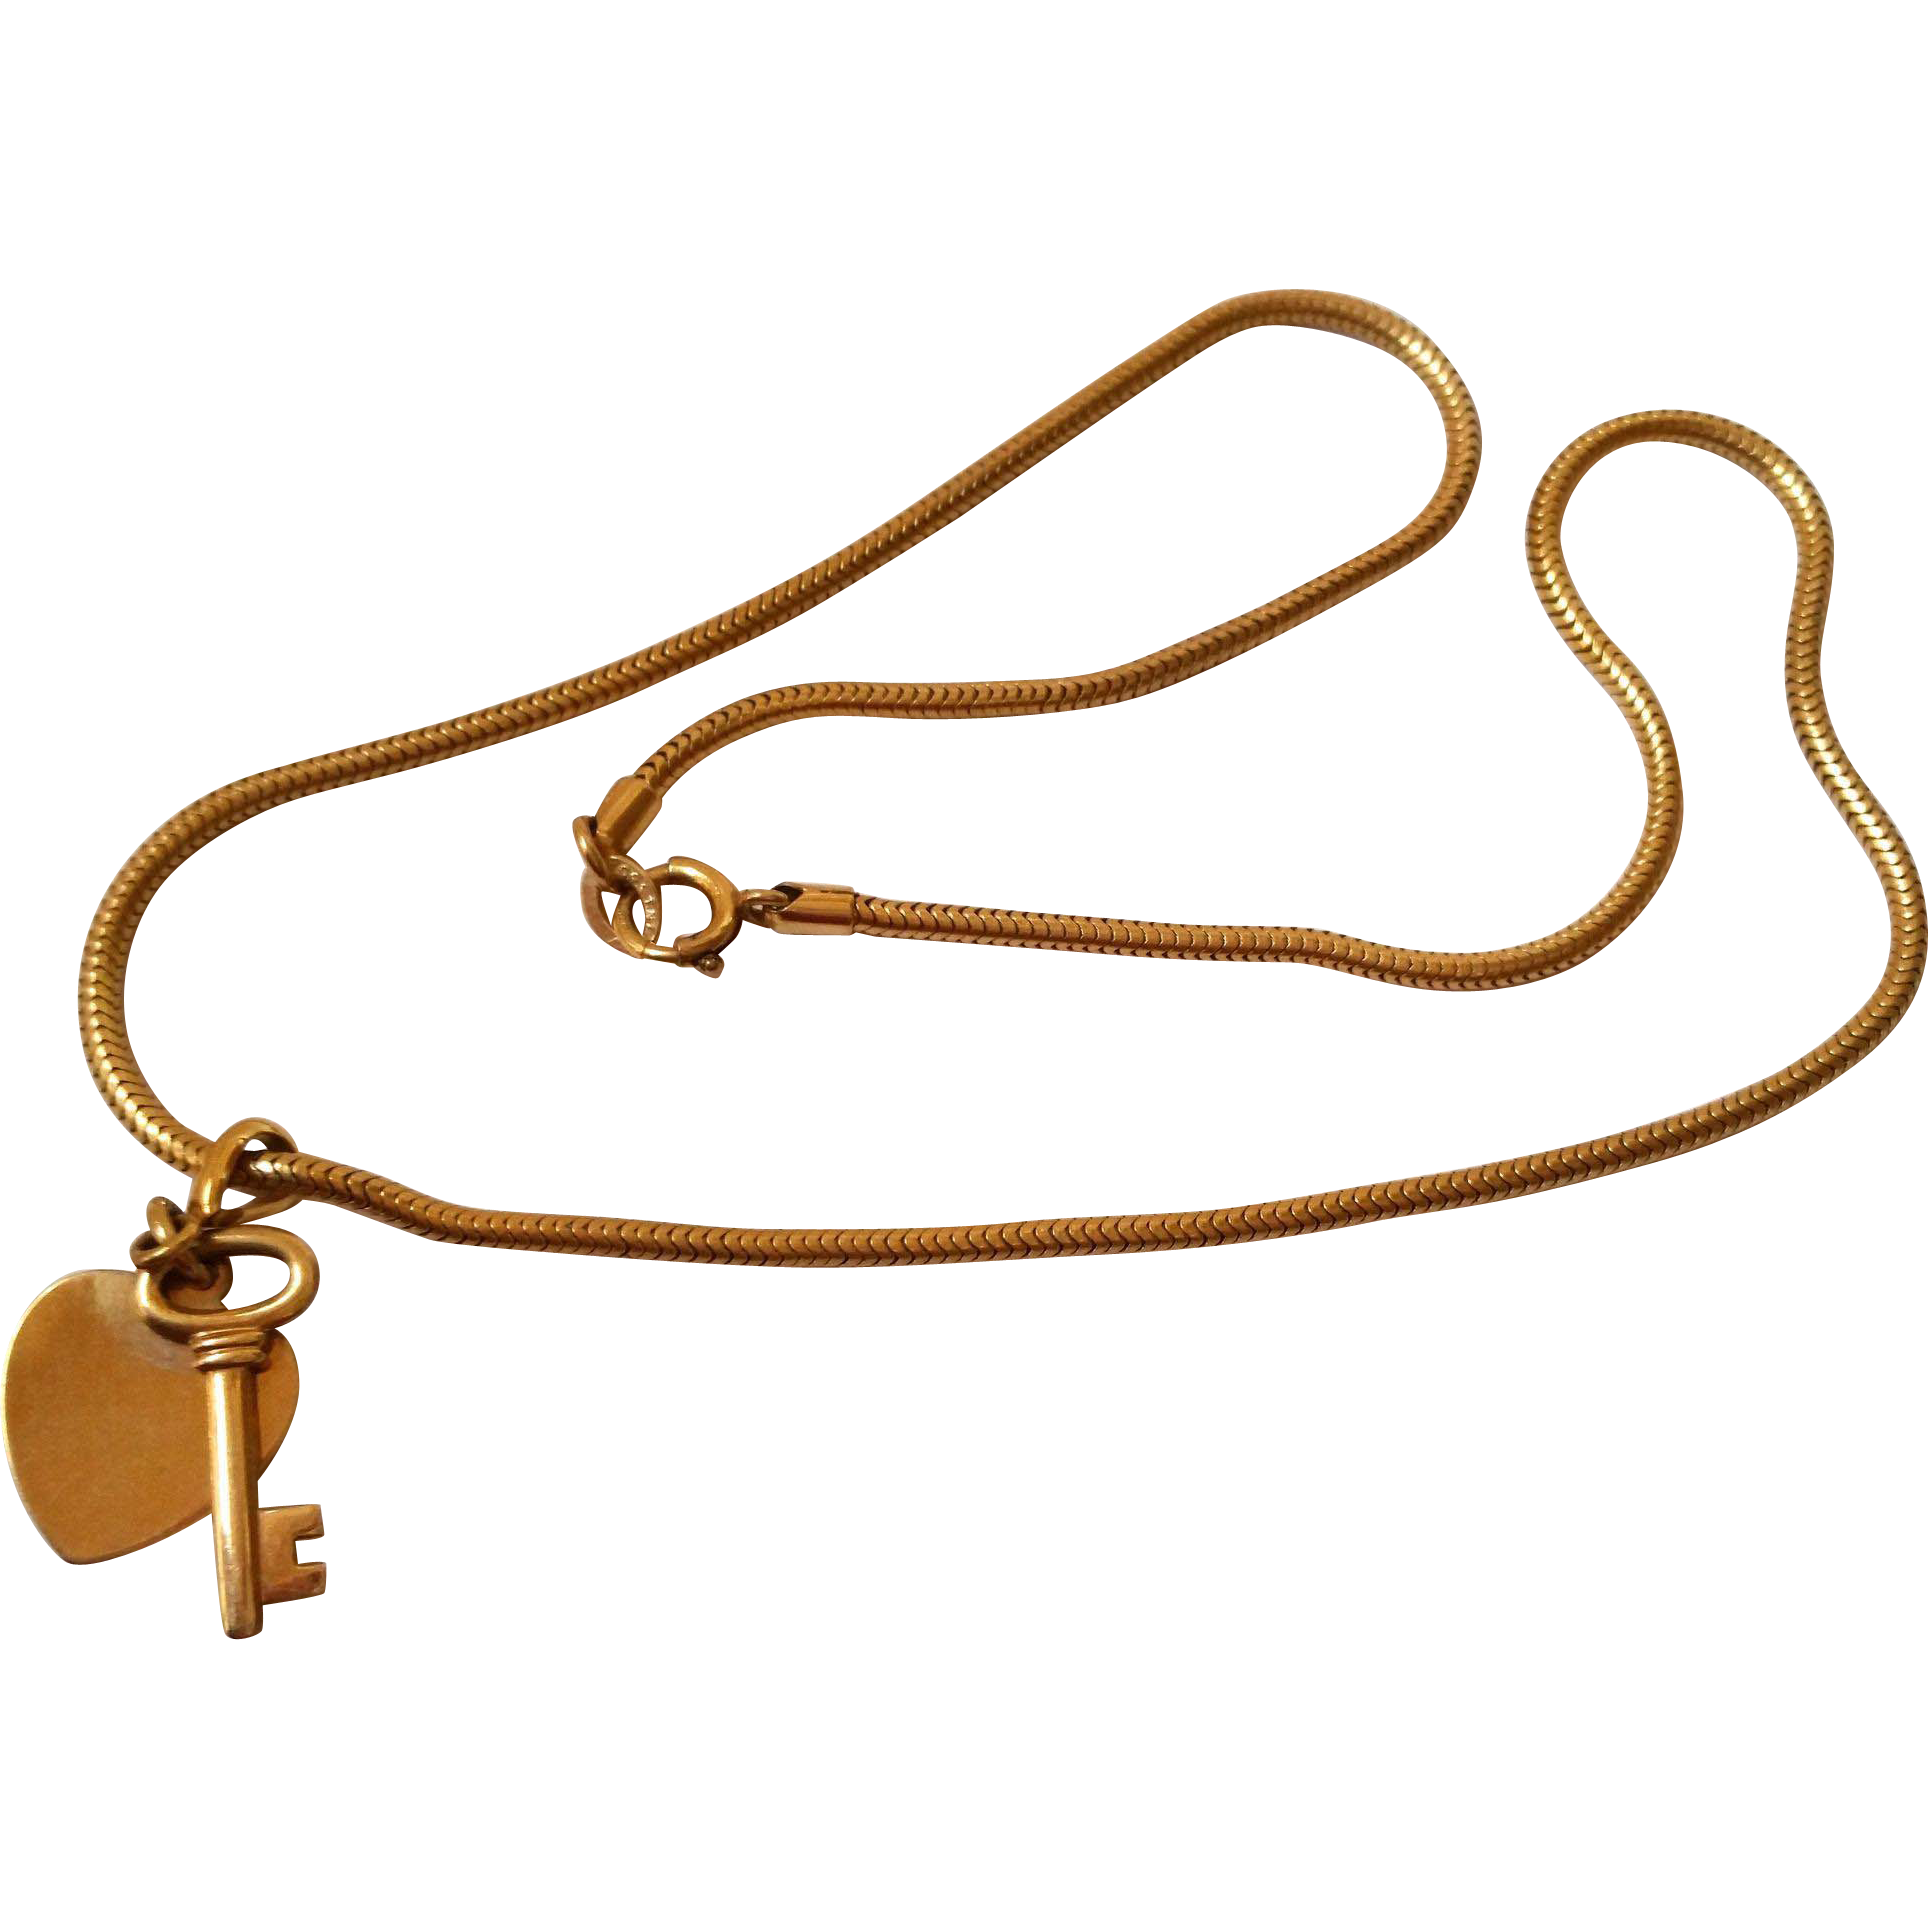 Forstner Key To My Heart Necklace on Snake Chain1 20 12K GF from